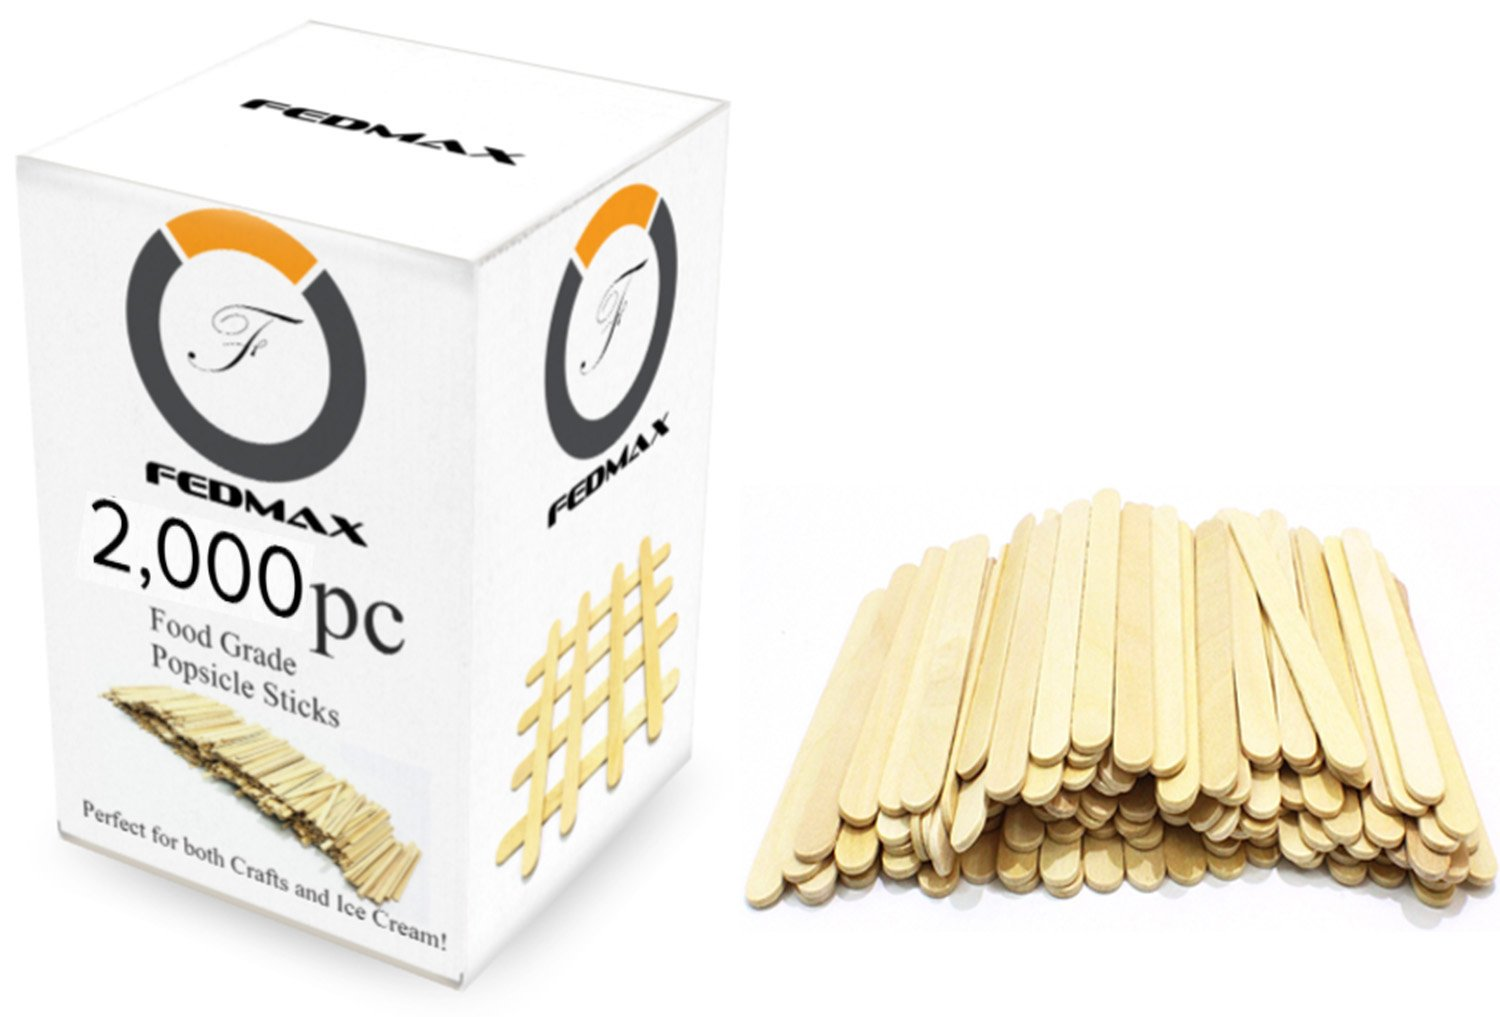 Popsicle Sticks, 2000pc, Standard 4-1/2'' Length, FDA Approved Food Grade Wooden Ice Cream Sticks, Great Bulk Sticks for Crafts, by Fedmax. (2,000pc)